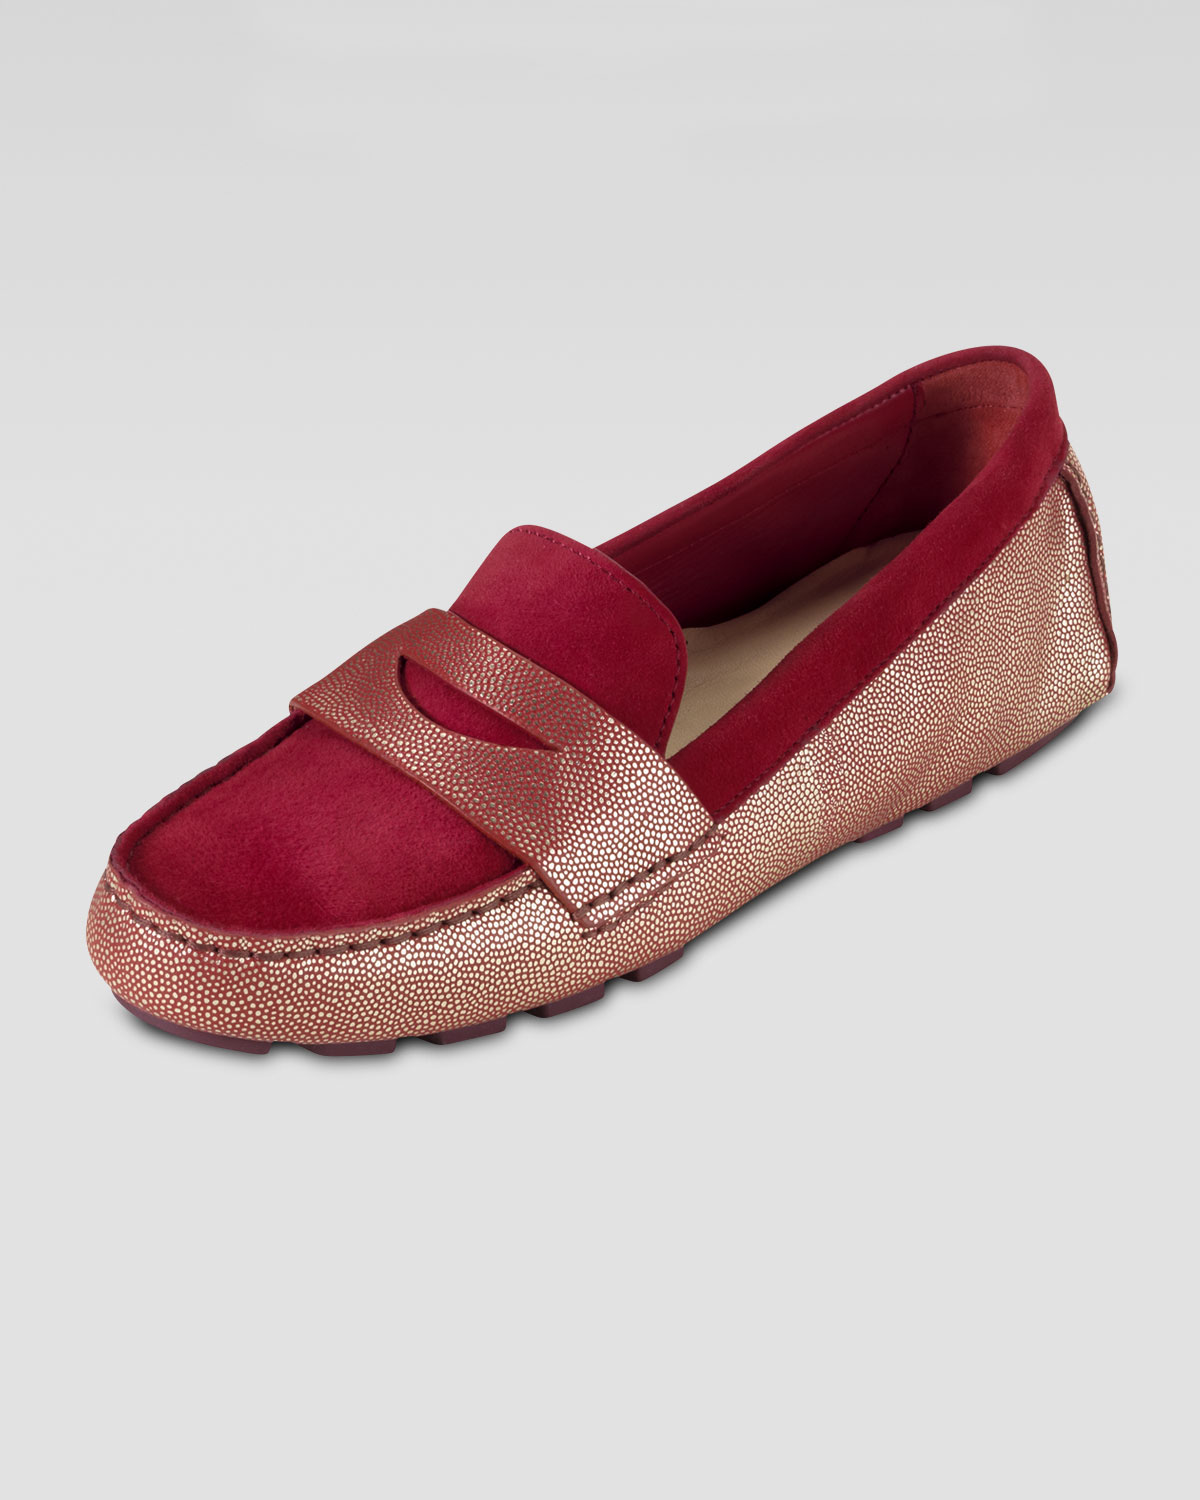 760f8a05c55 Lyst - Cole Haan Air Sadie Suede Driver Moccasin in Red